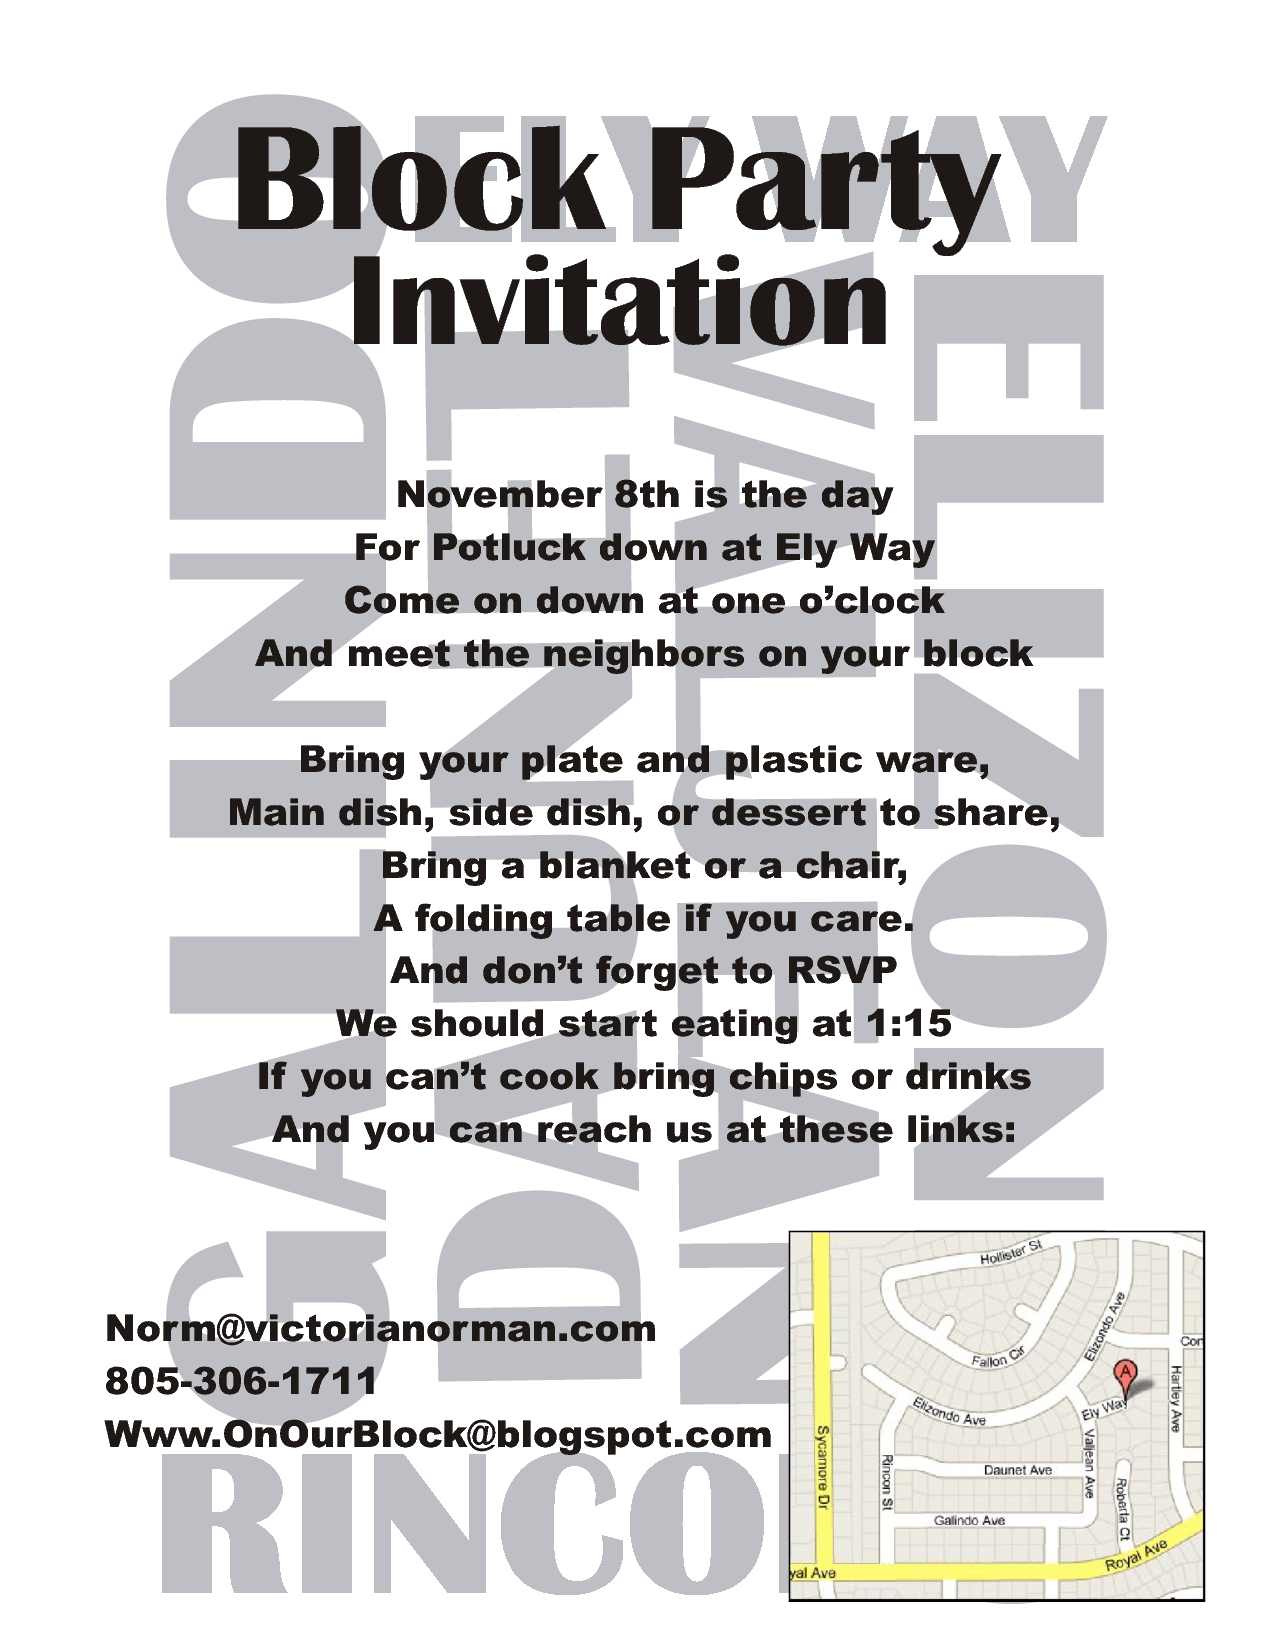 Block party invitation examples block party invitation samples 1275 x 1650 stopboris Images